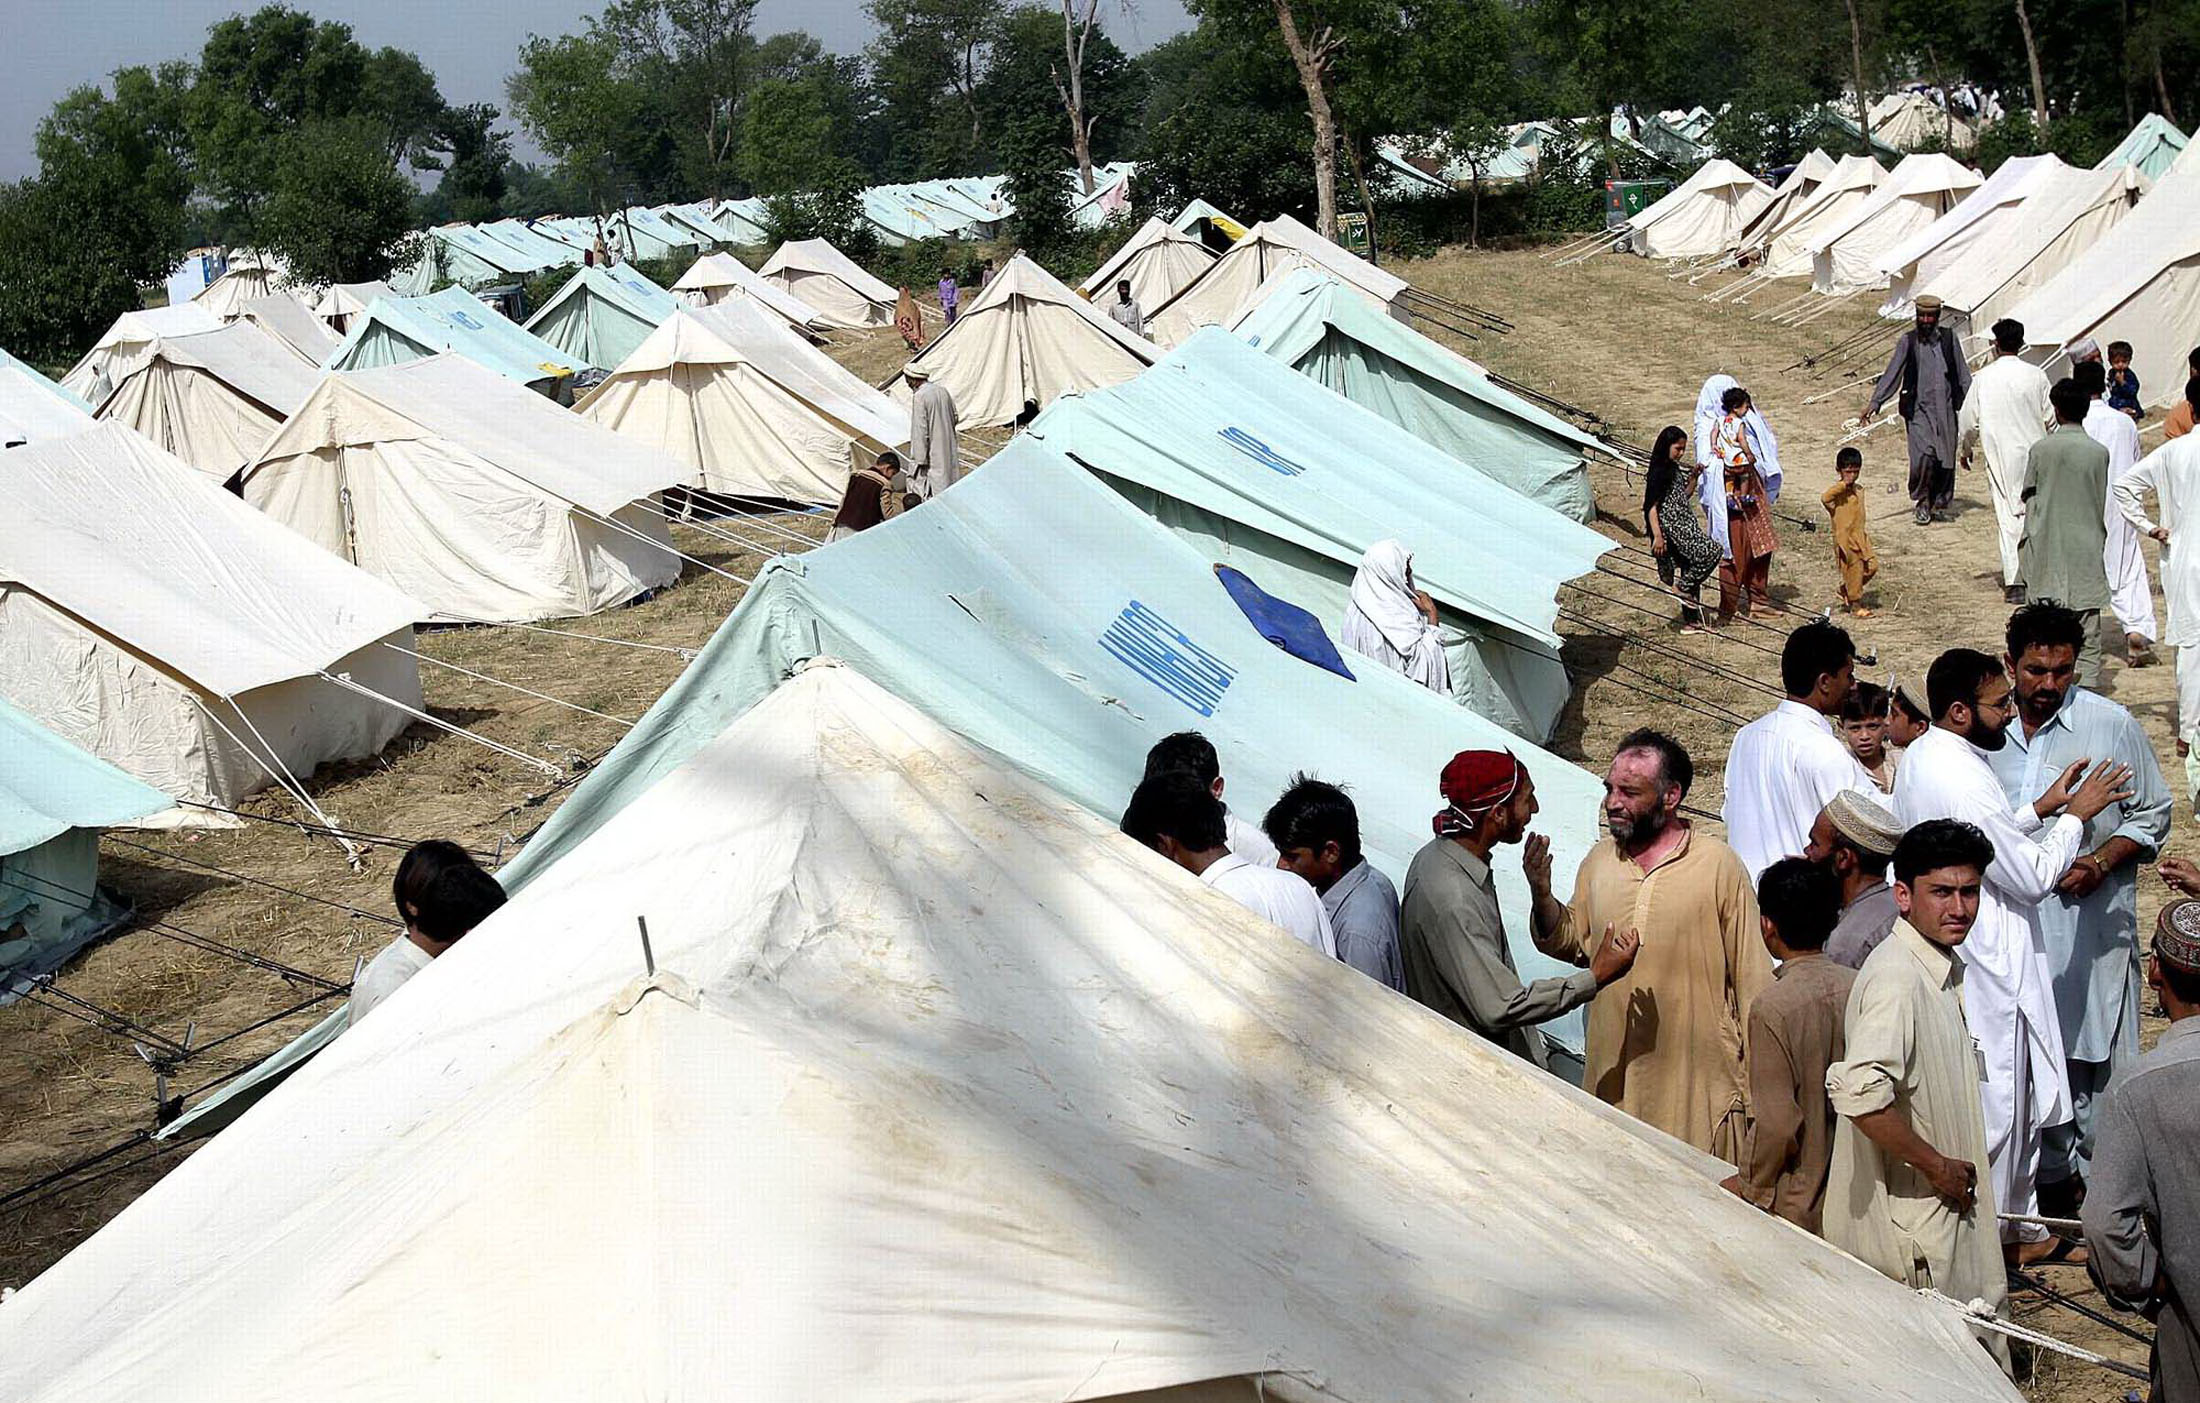 Better housing conditions are a key priority for IDPs in camps